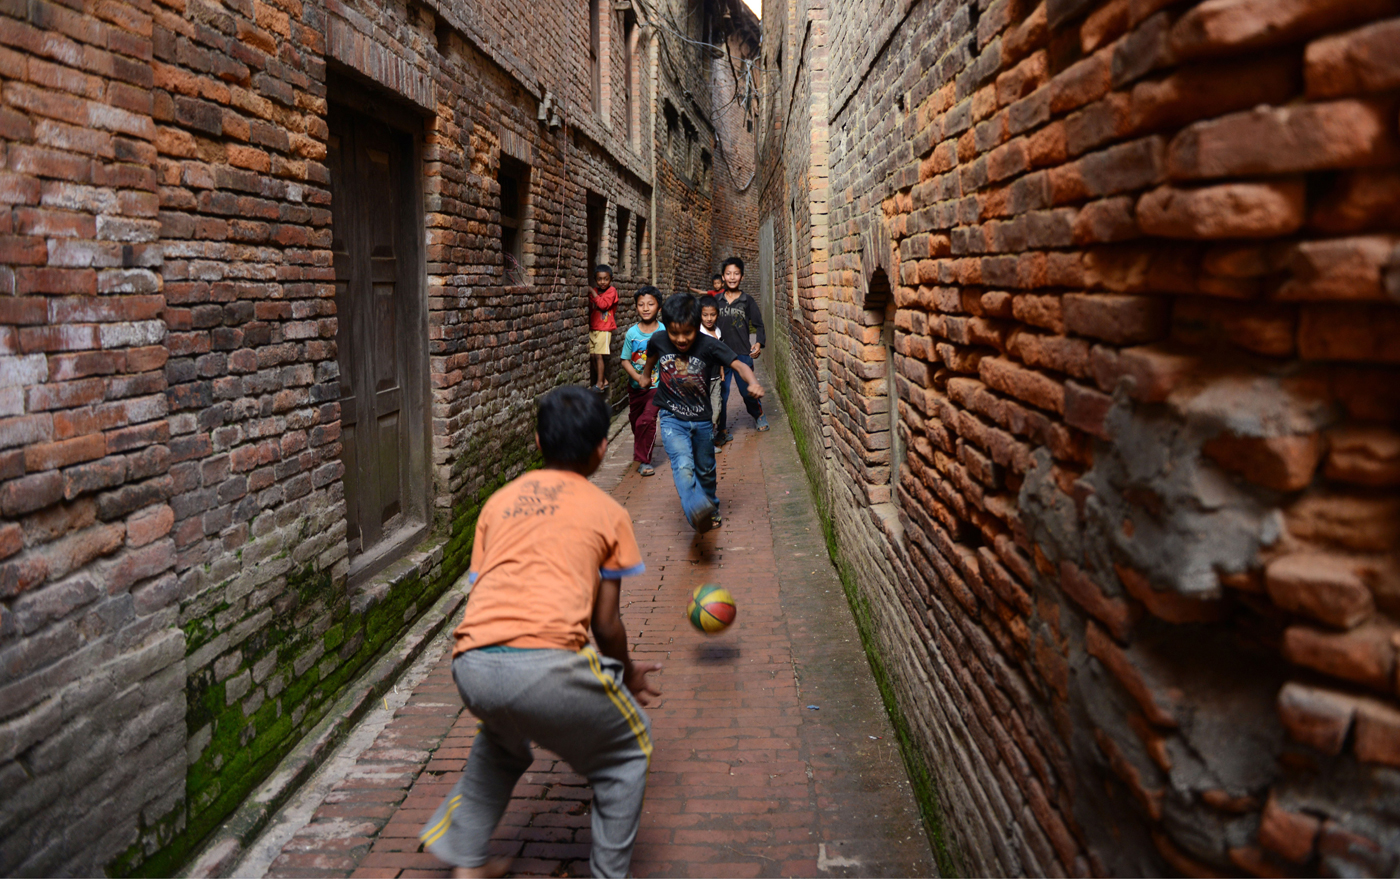 Football? Futsal? If it involves kicking a ball around, they'll play it in Nepal